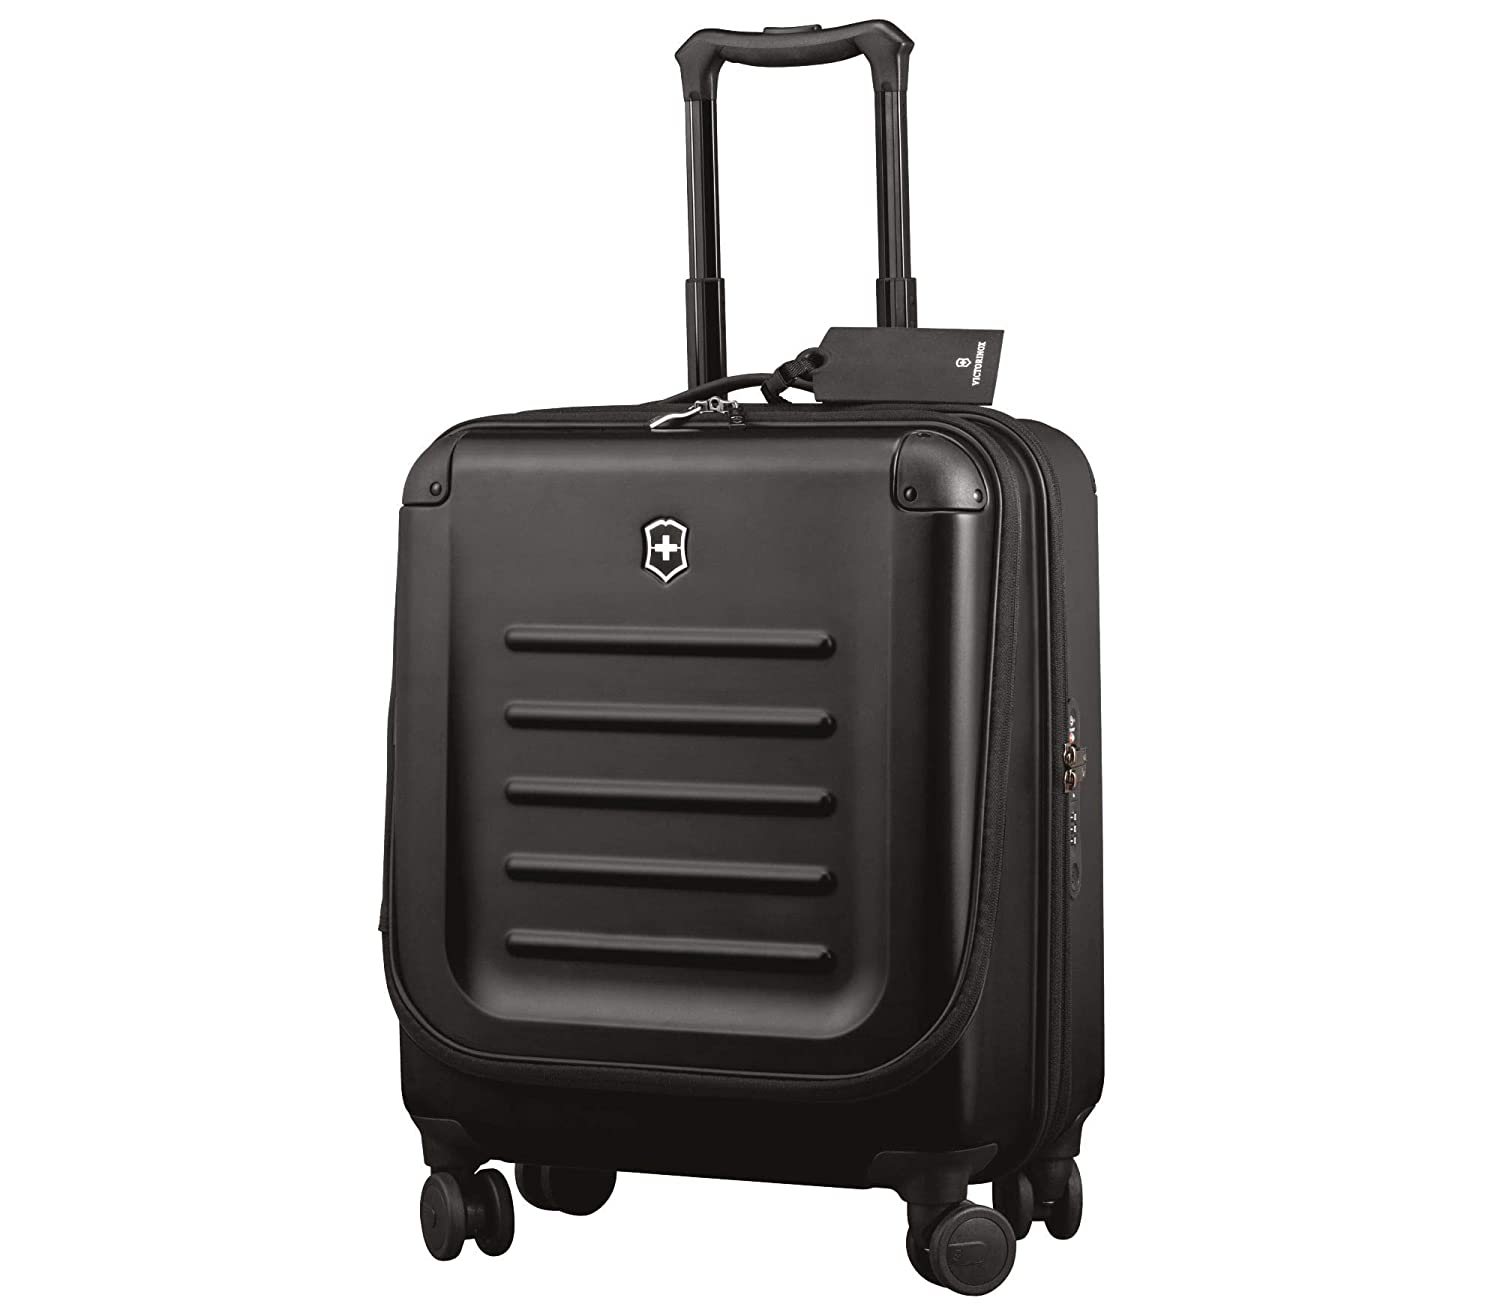 Victorinox Spectra 2.0 Extra Capacity Dual-Access Carry-On Hardside Spinner Suitcase, 21-Inch, Black